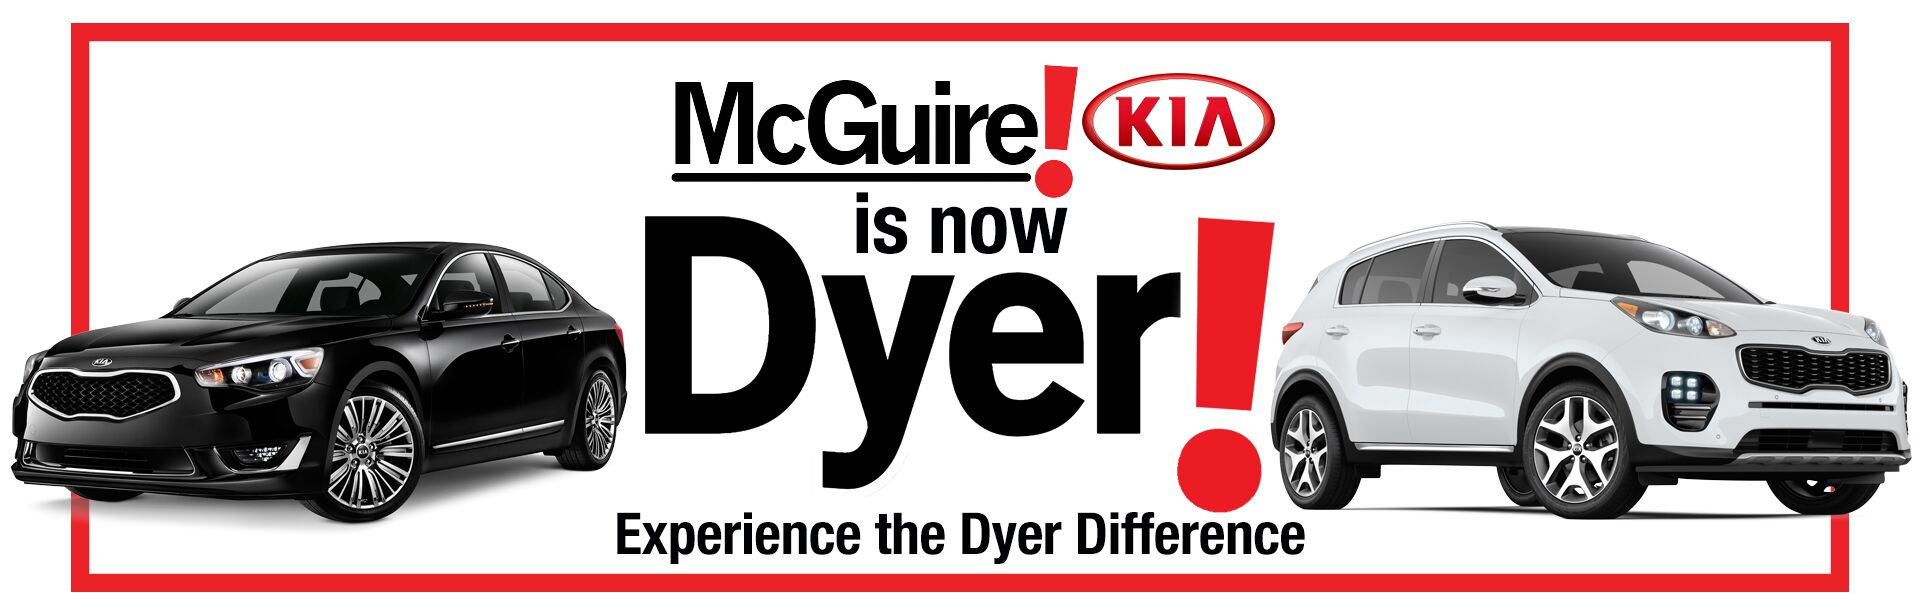 McGuire now Dyer